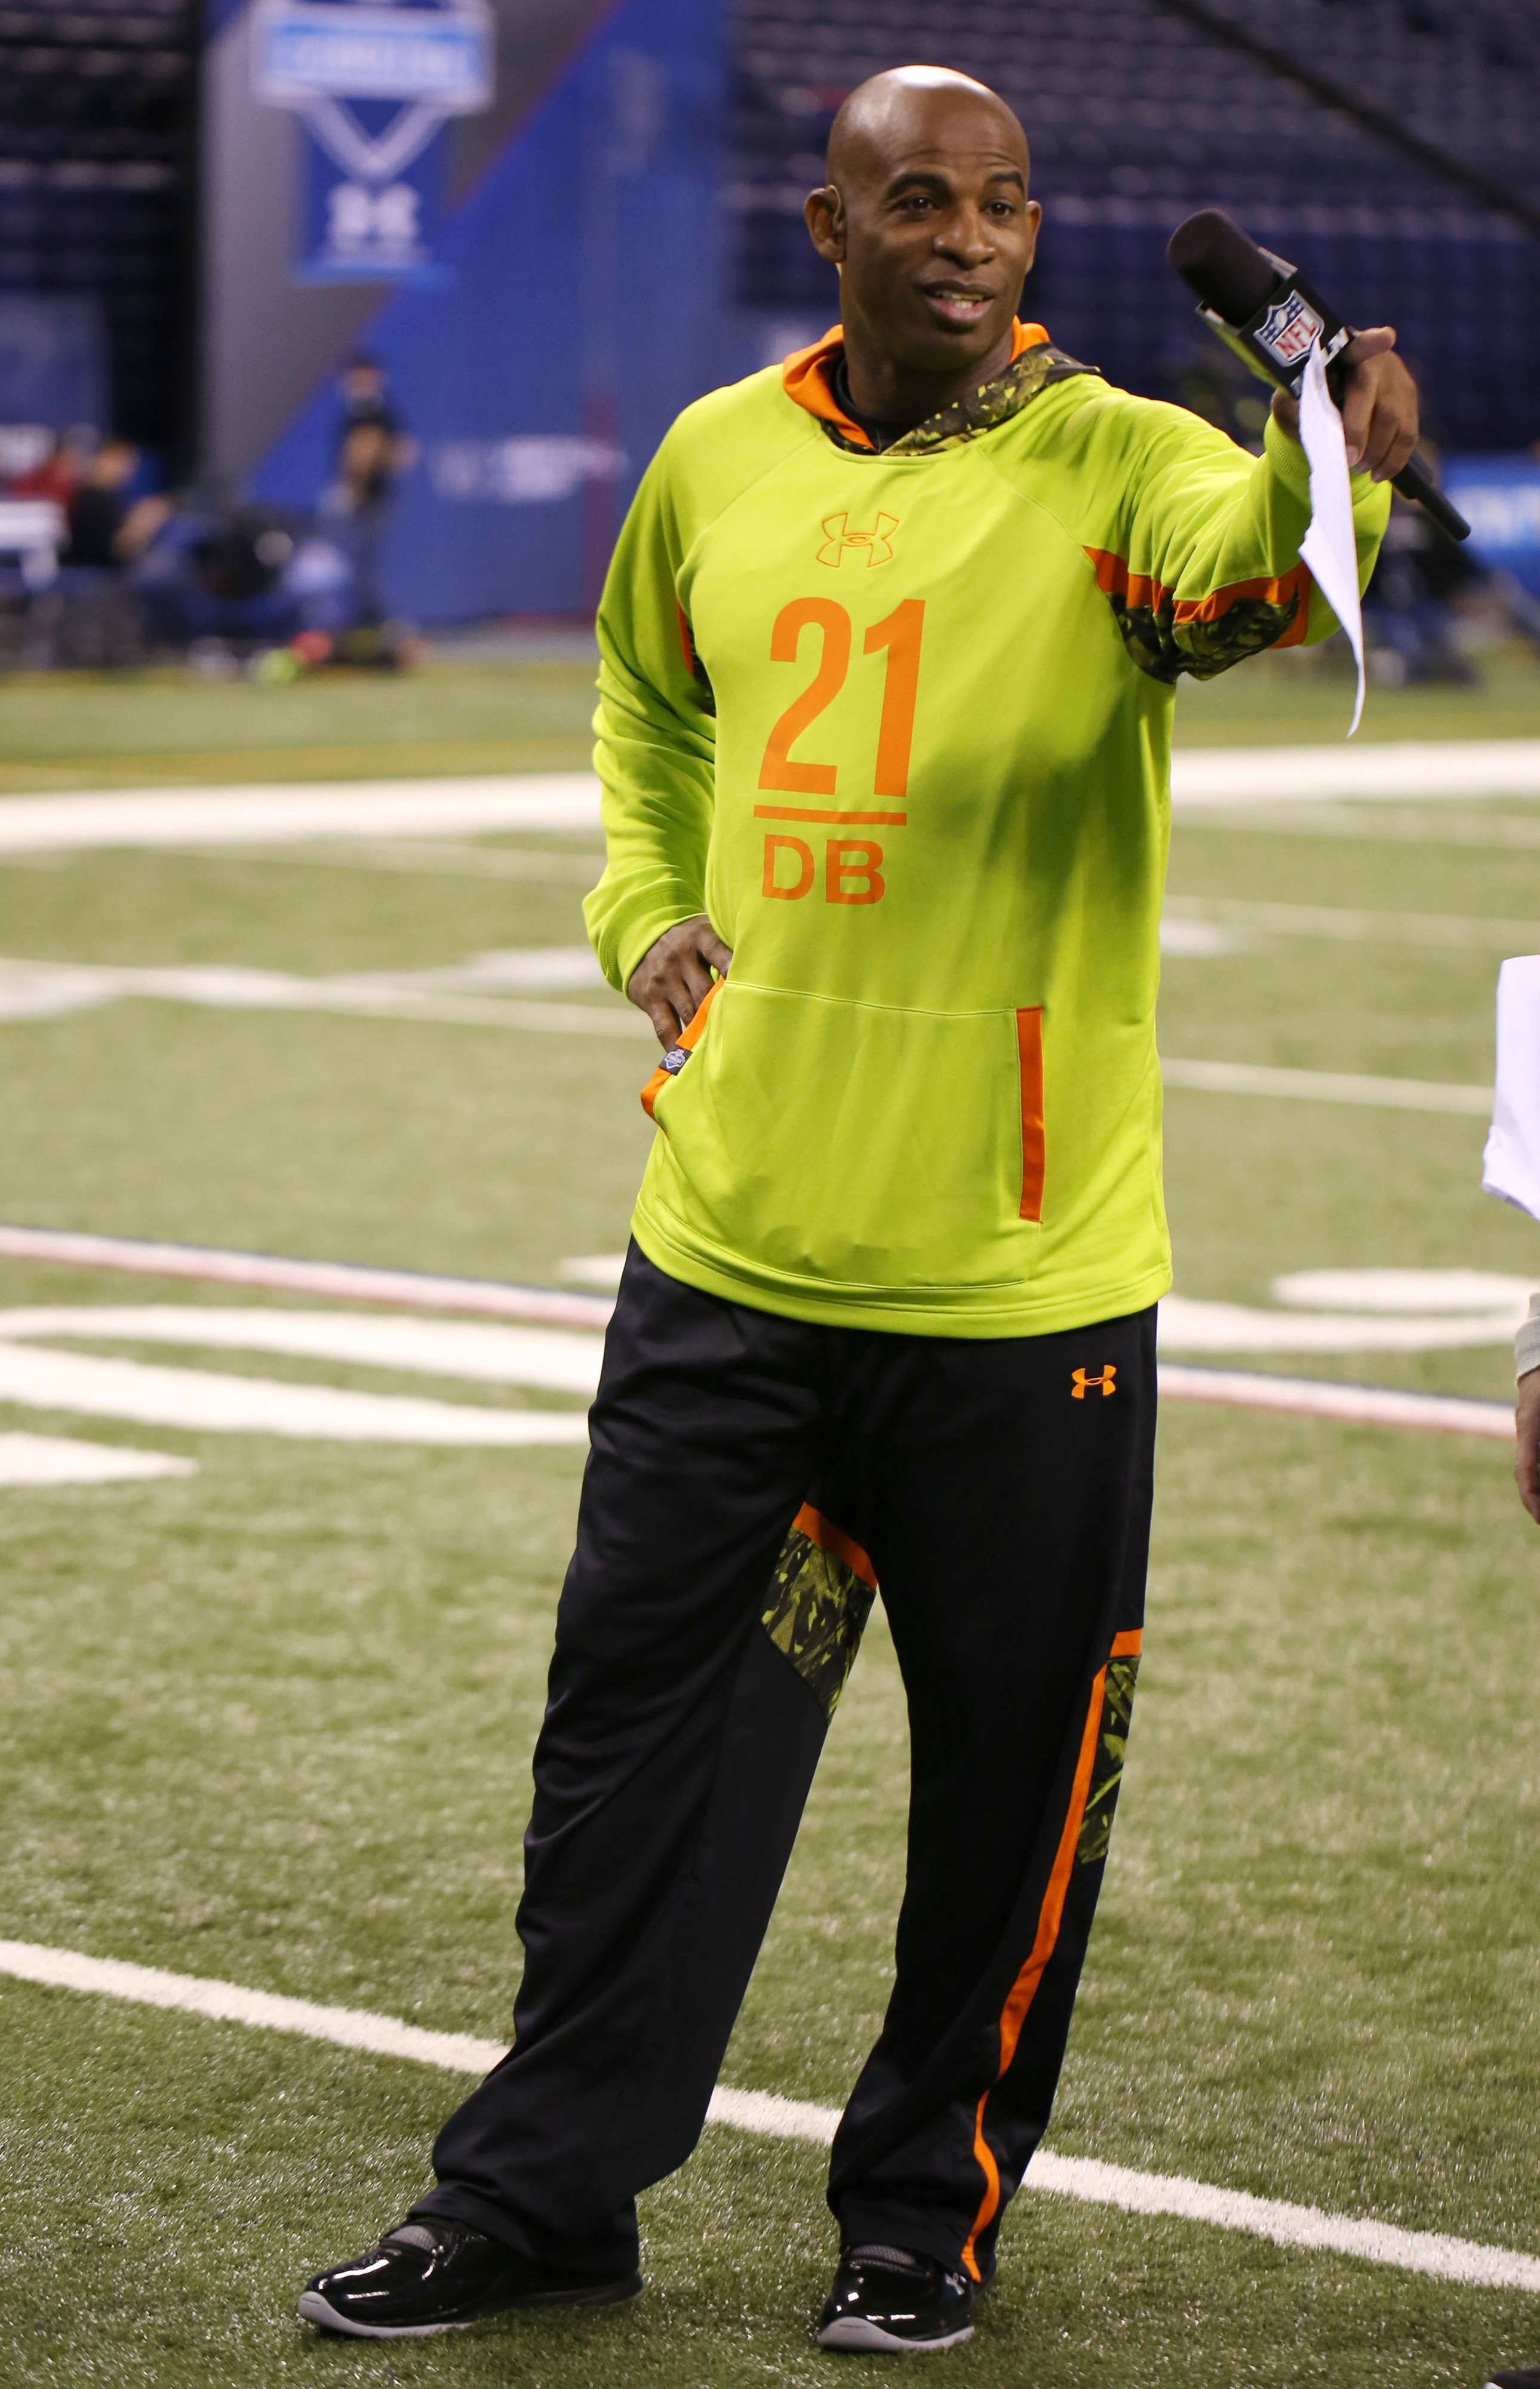 Deion Sanders tweets he'll play in the Pro Bowl, Jerry Rice is more lukewarm